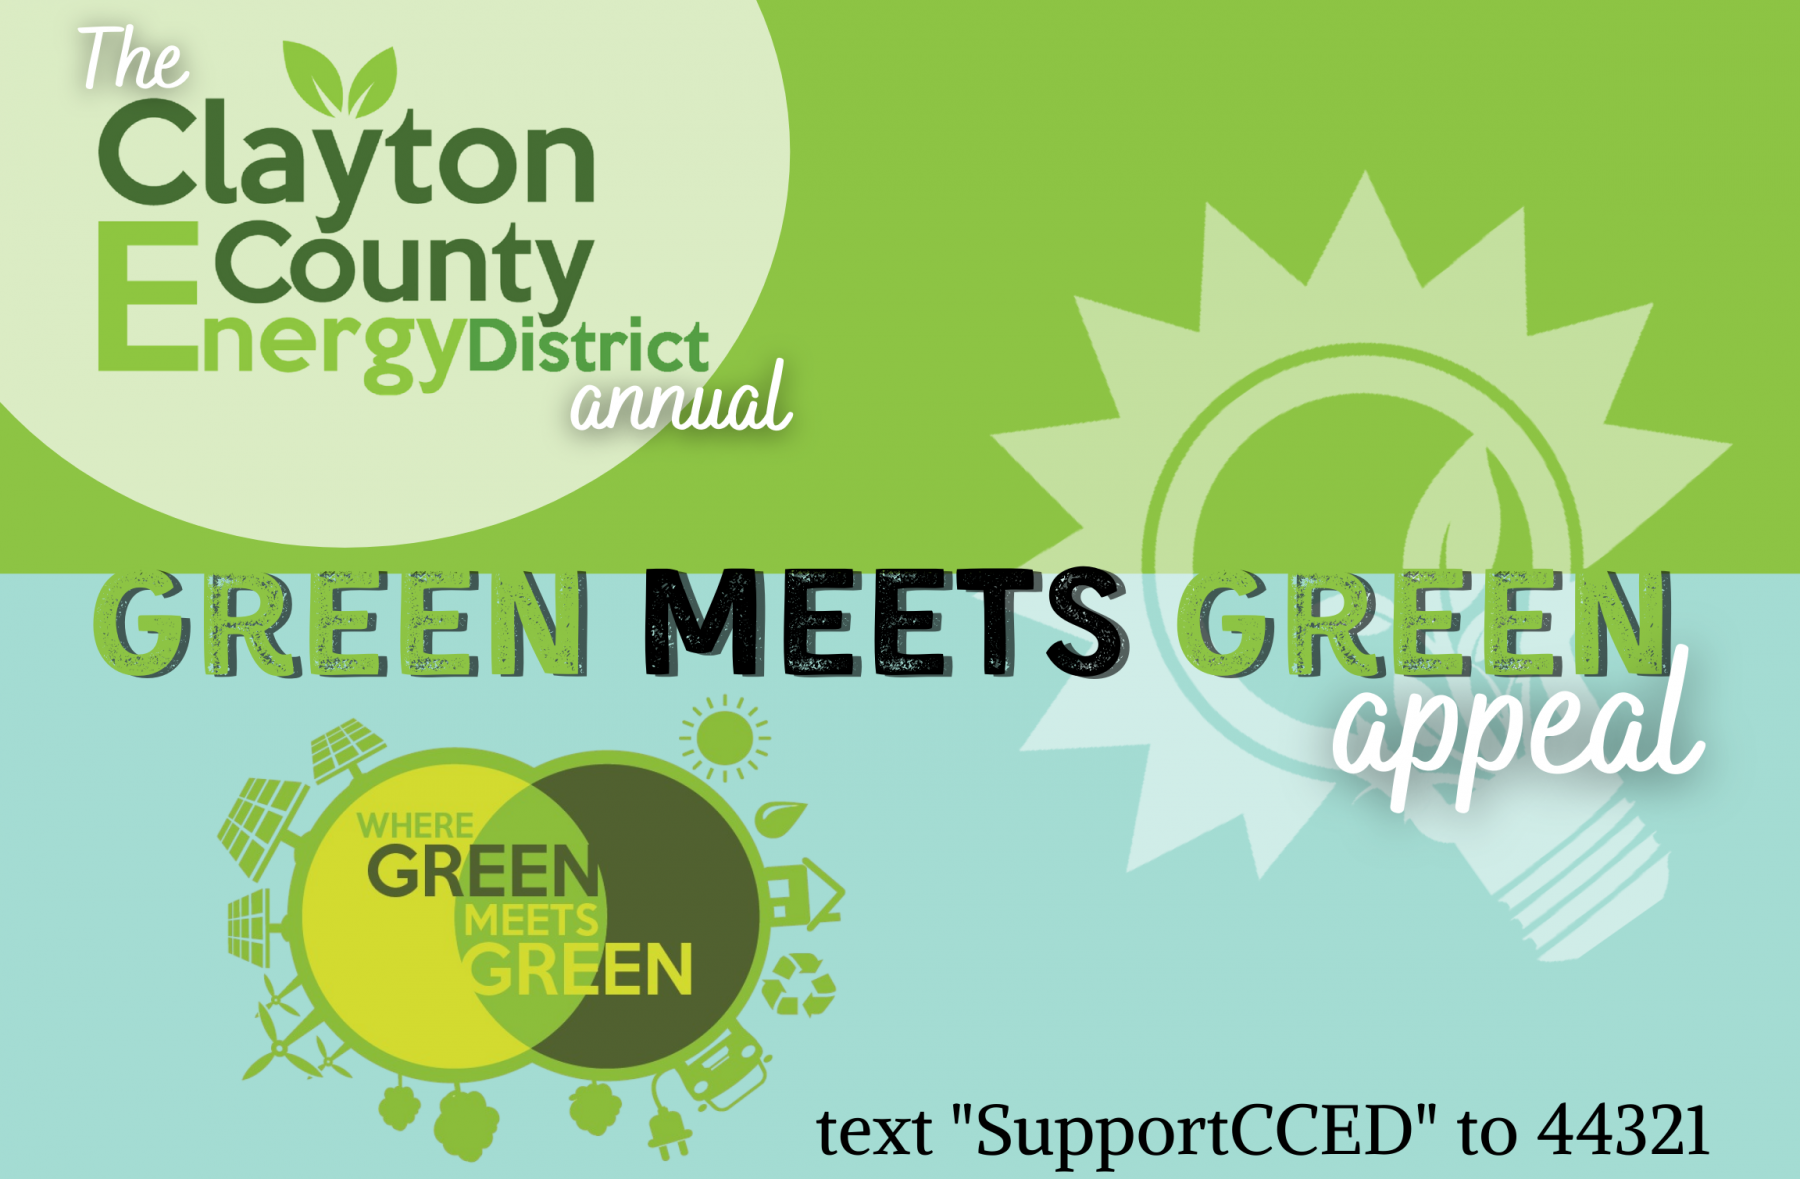 2020 Green Meets Green Annual Appeal